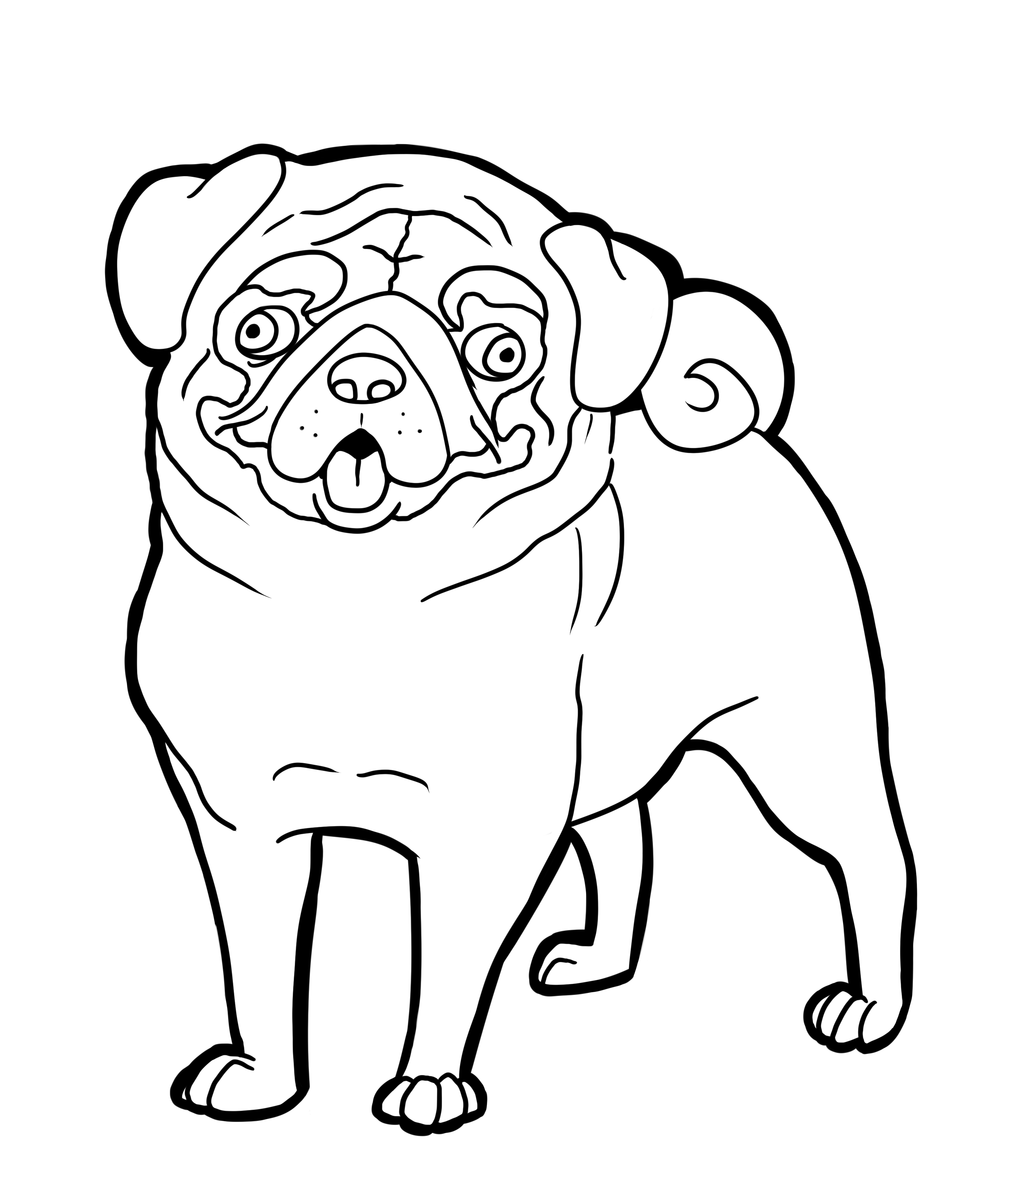 pug coloring pages cute pug dog coloring page free printable coloring pages coloring pages pug